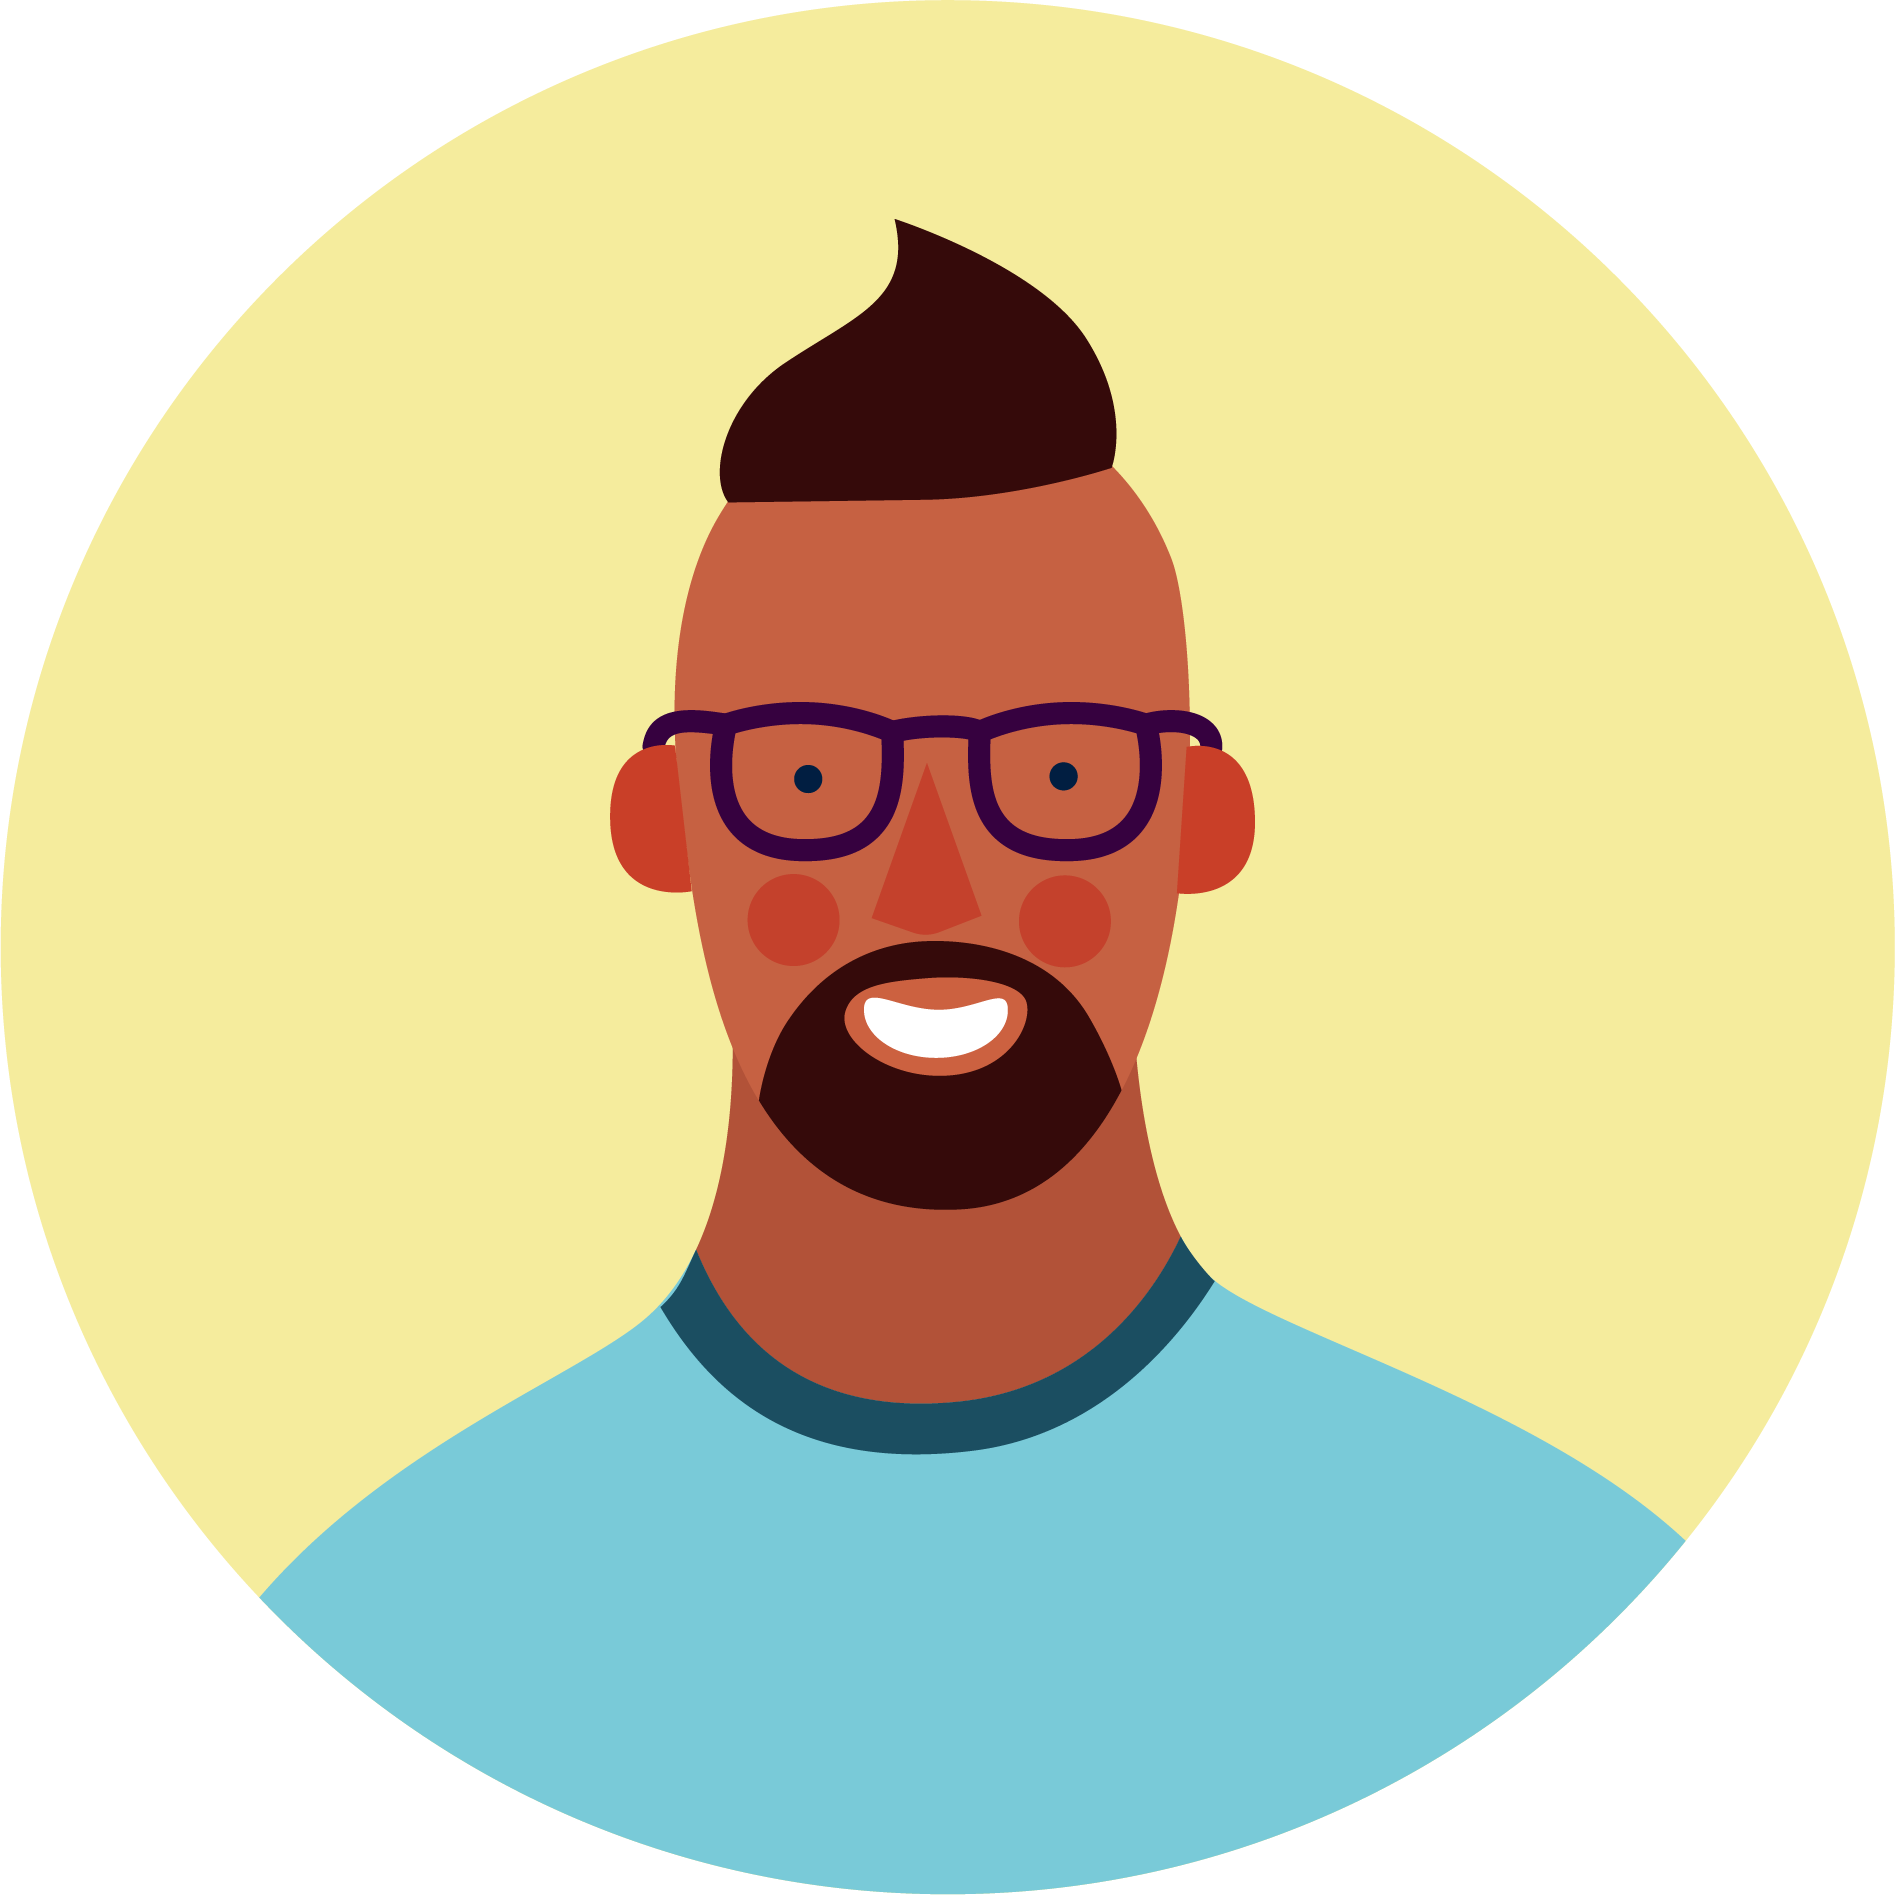 illustration of a person smiling